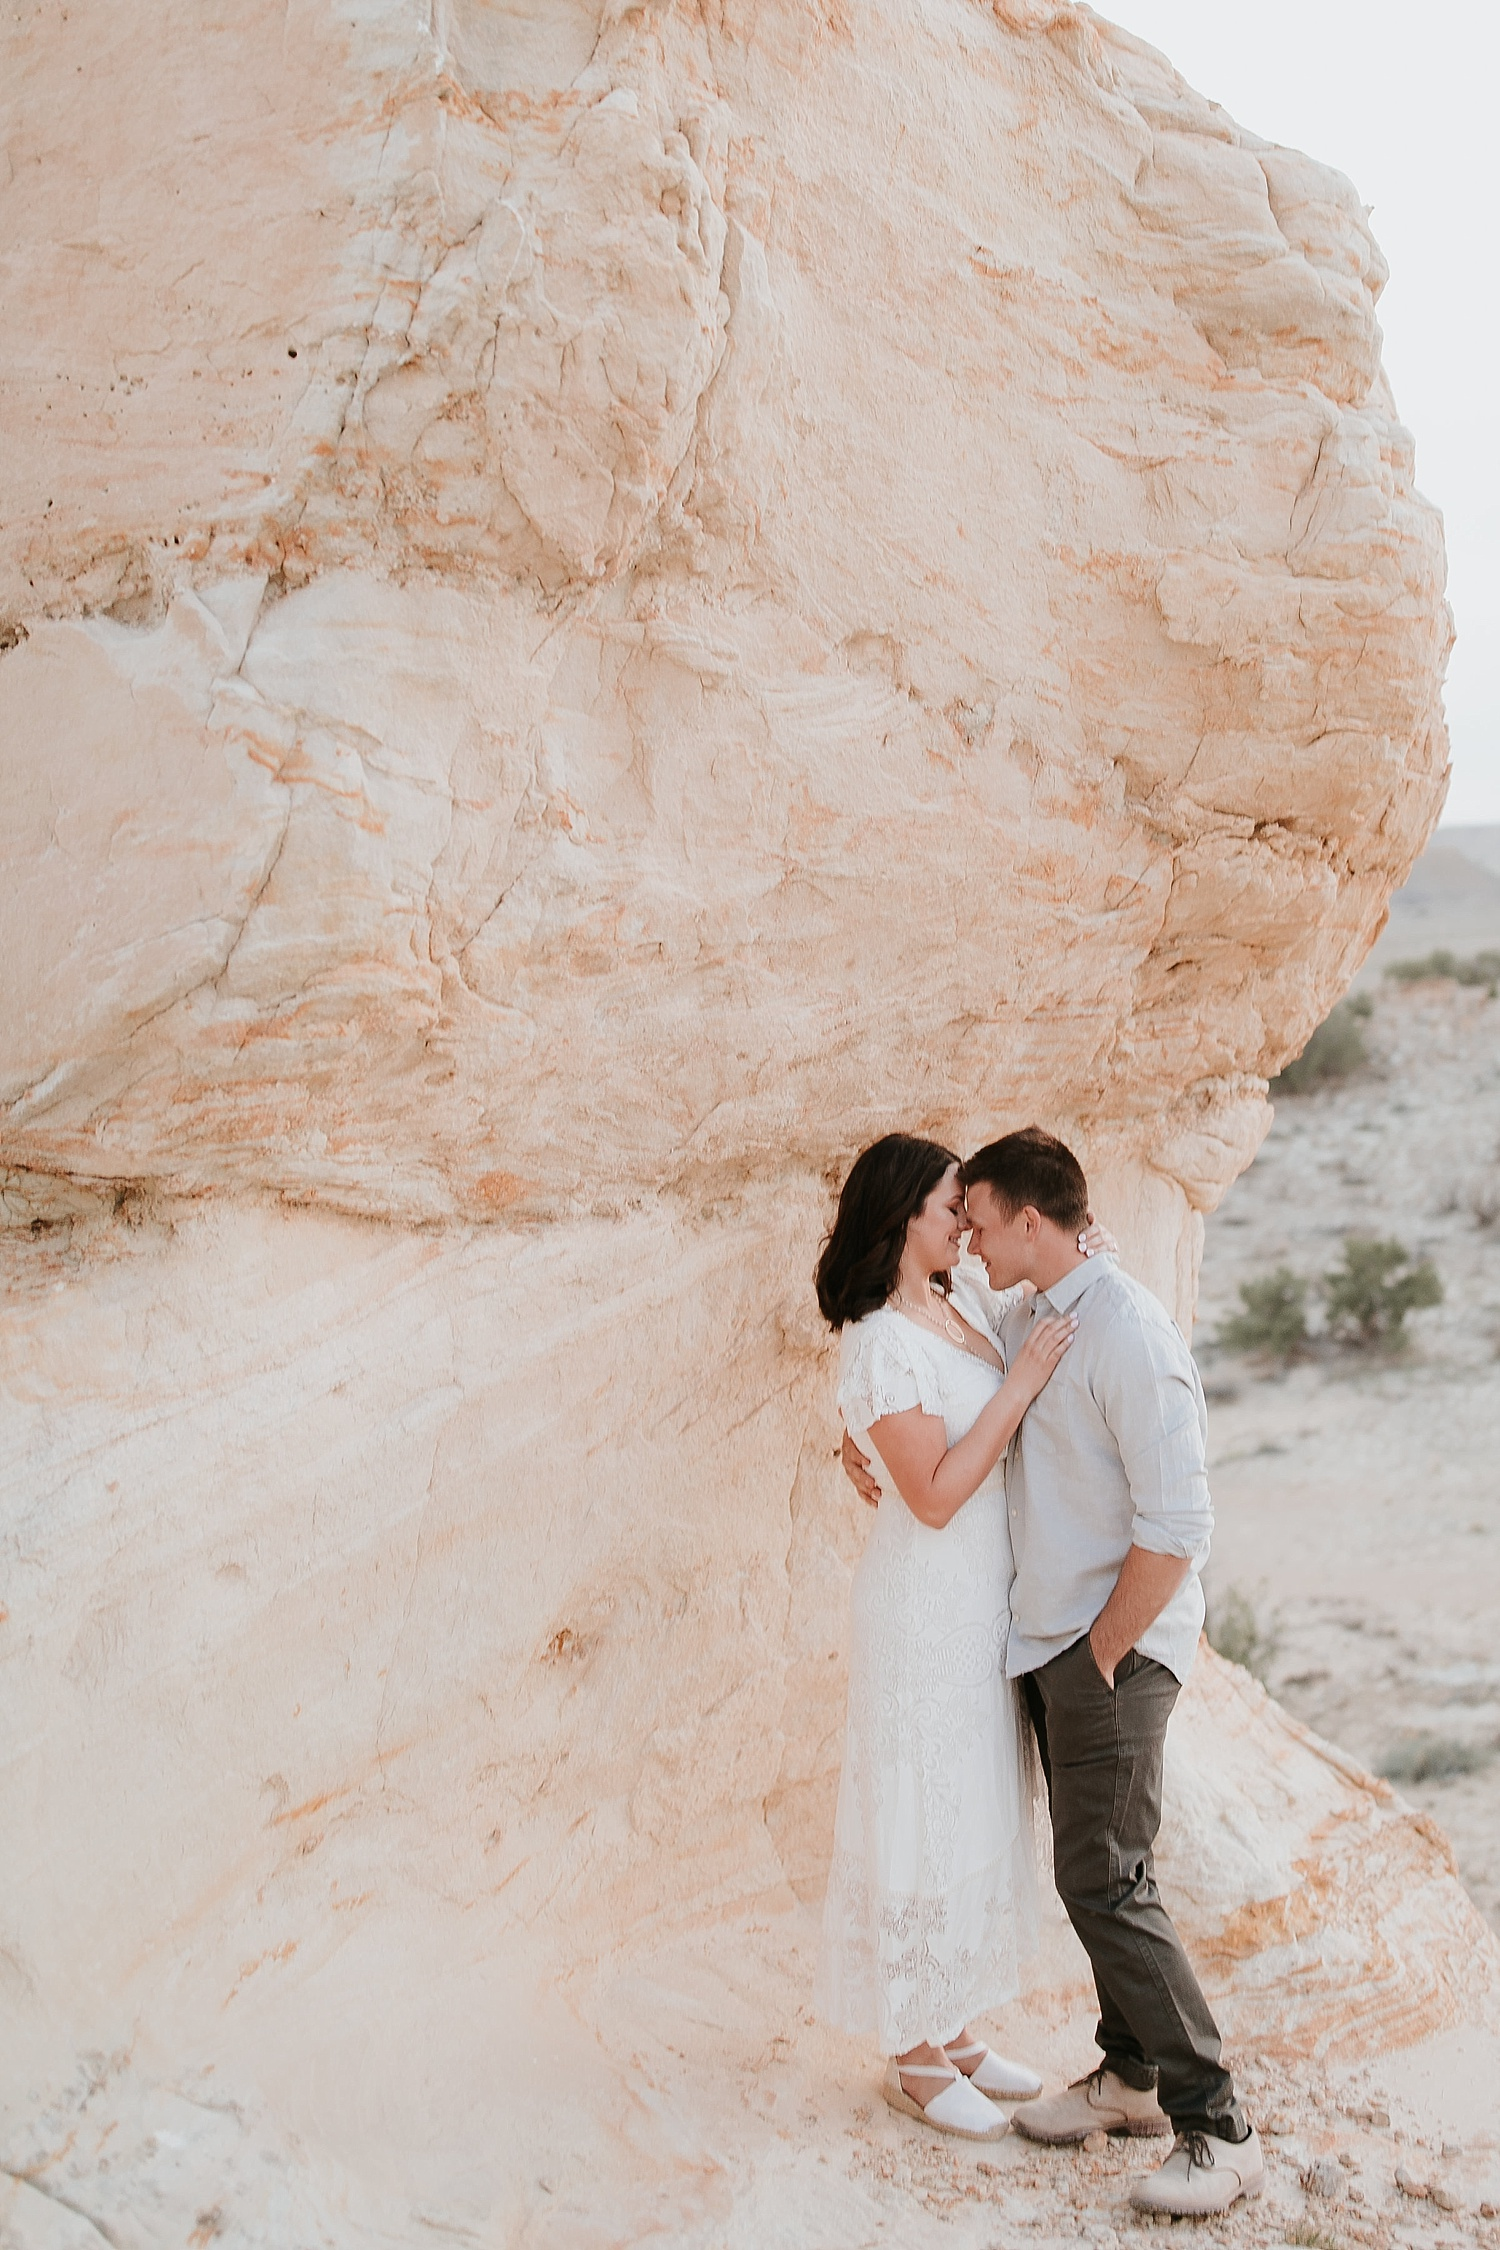 Alicia+lucia+photography+-+albuquerque+wedding+photographer+-+santa+fe+wedding+photography+-+new+mexico+wedding+photographer+-+new+mexico+engagement+-+desert+engagement_0017.jpg